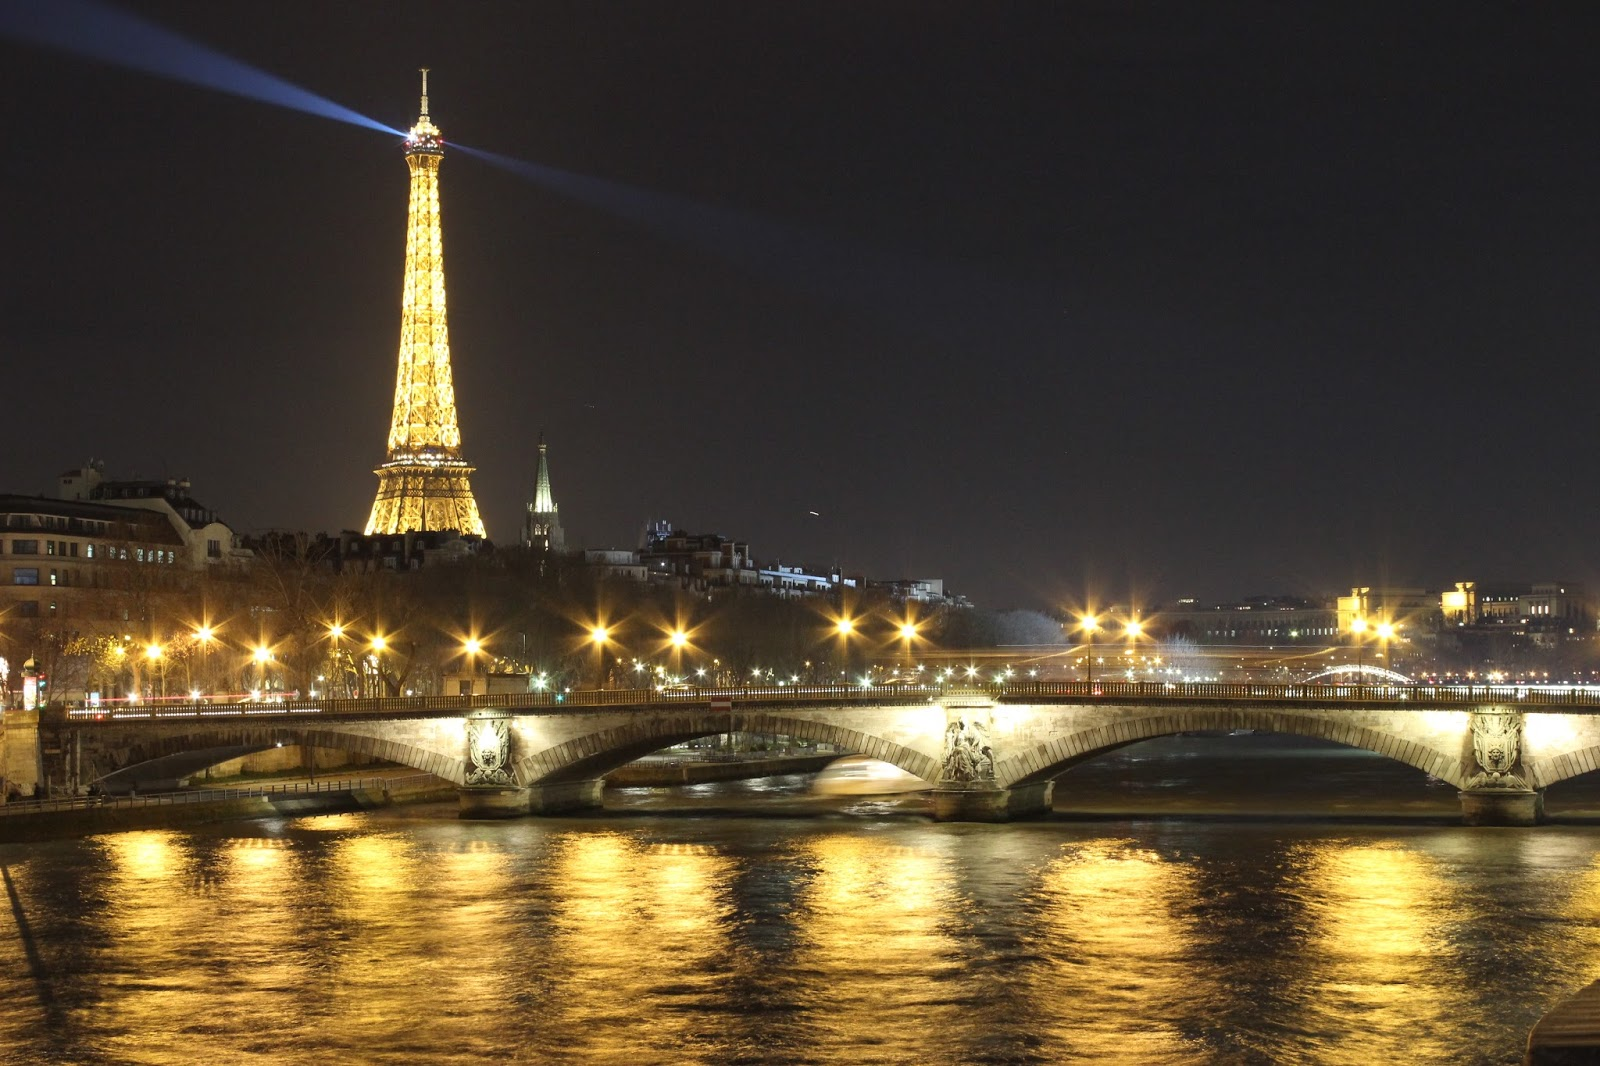 review fujifilm xm1 and fujinon xf35mm f1.4-14 long exposure paris eiffel with canon 600d